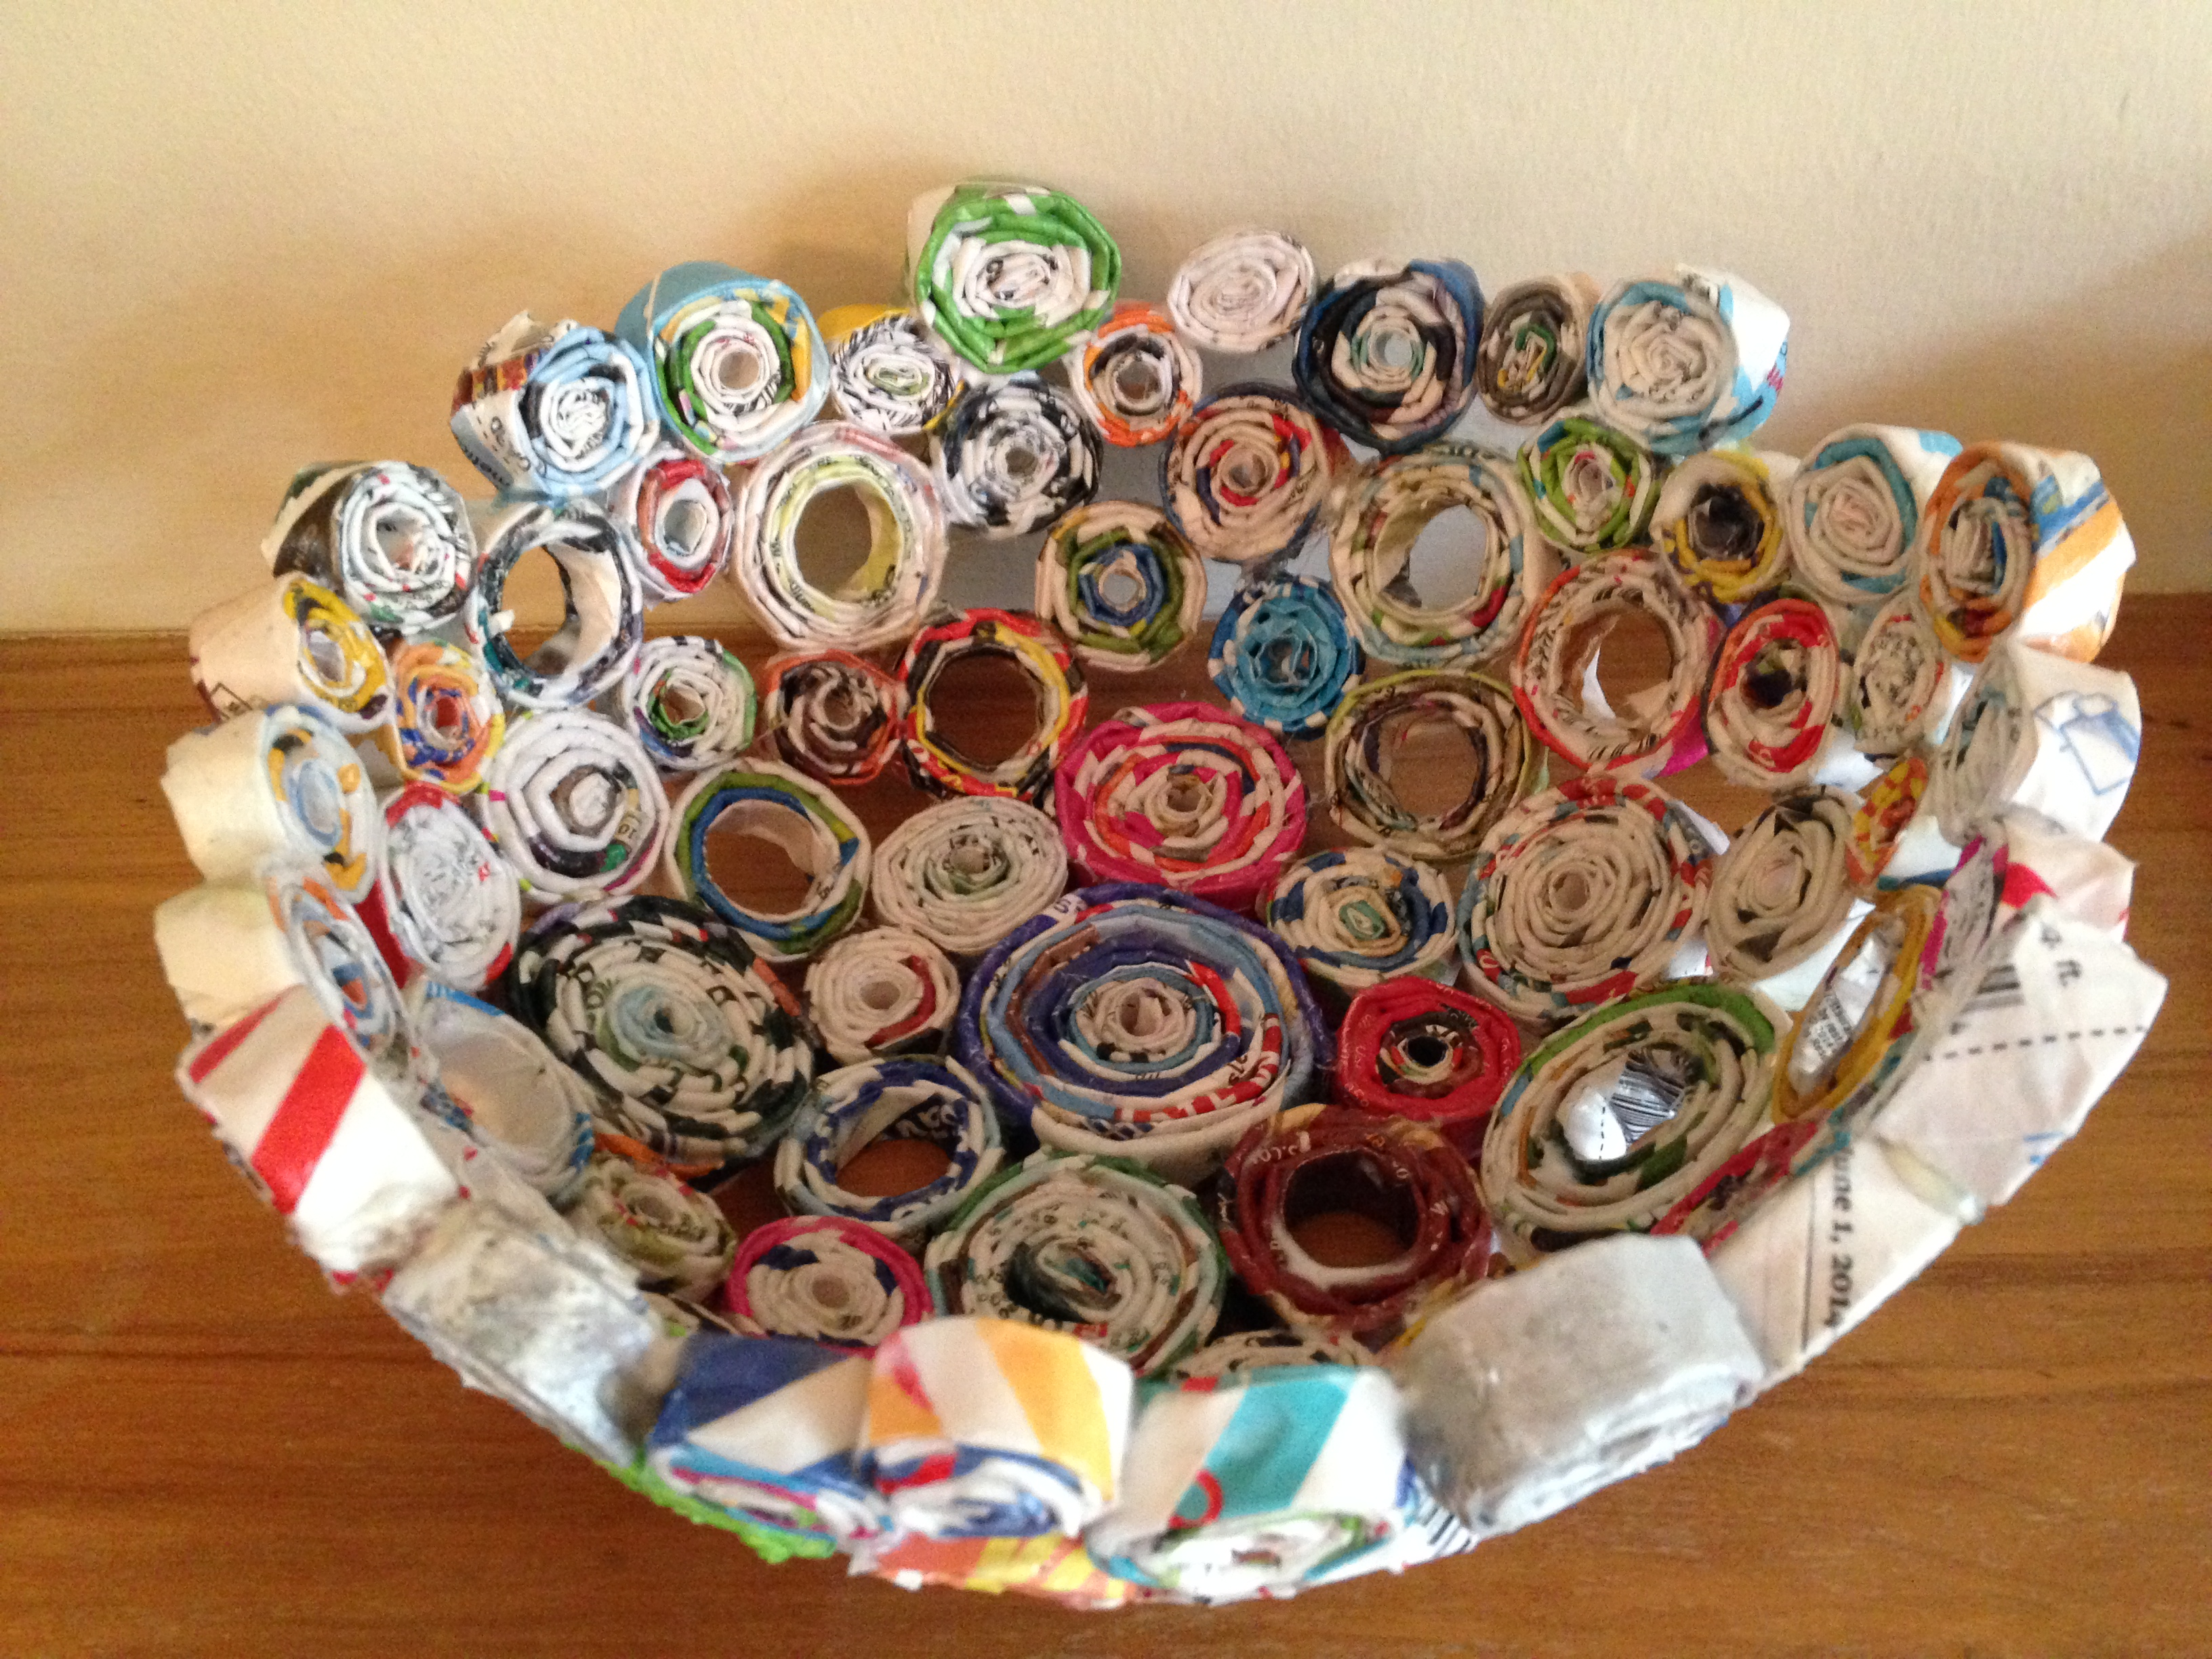 Uncategorized debbie arts crafts for Images of decorative items made from waste material